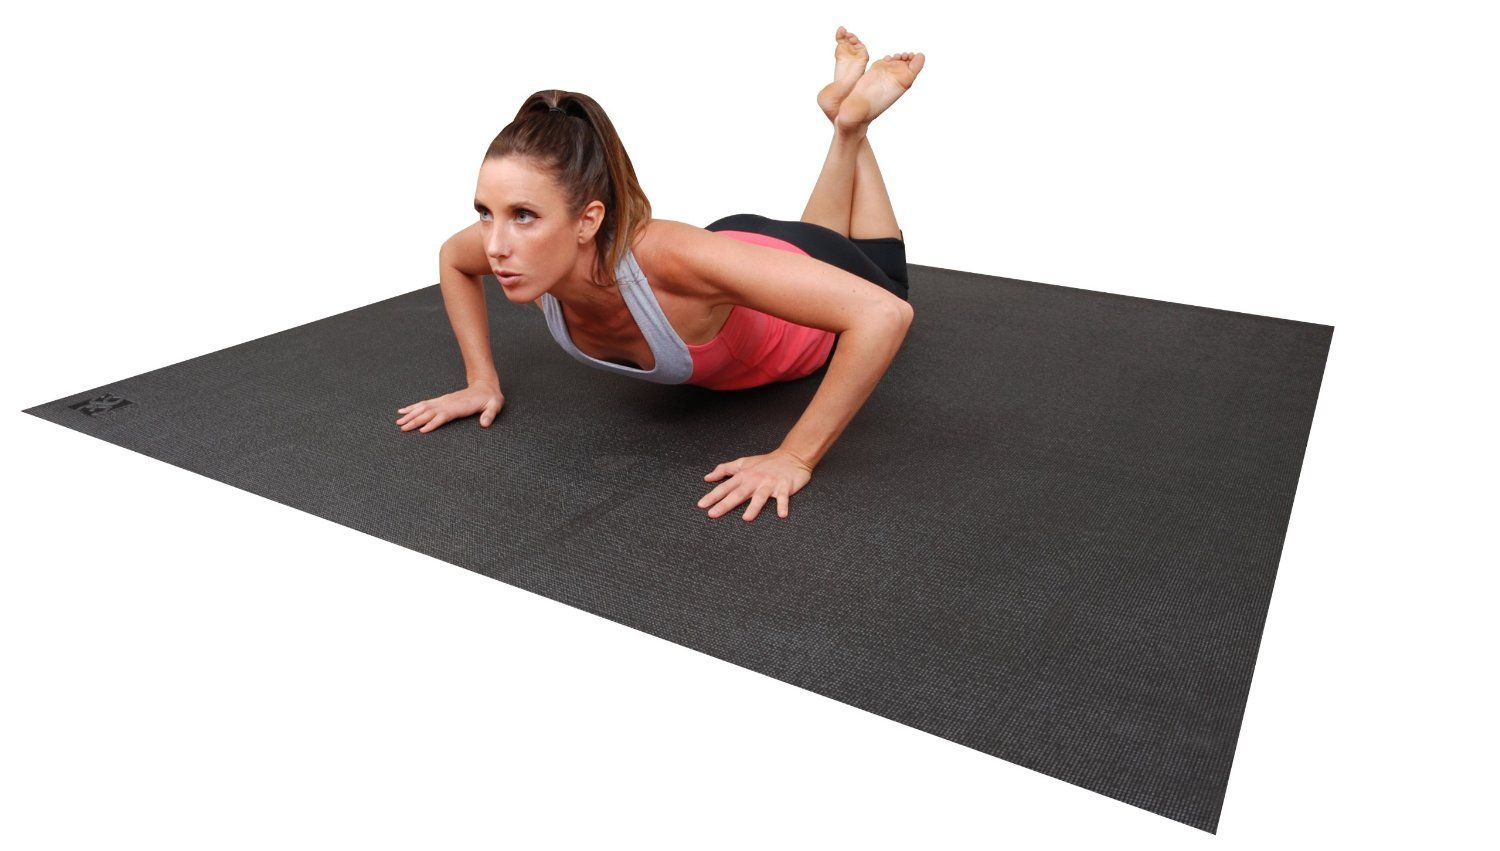 lifetime mat it might pogamat of its put quality real or workout does that mats focus because for you issue large extra july guarantee size from some and buying only price type is off best the review insanity come